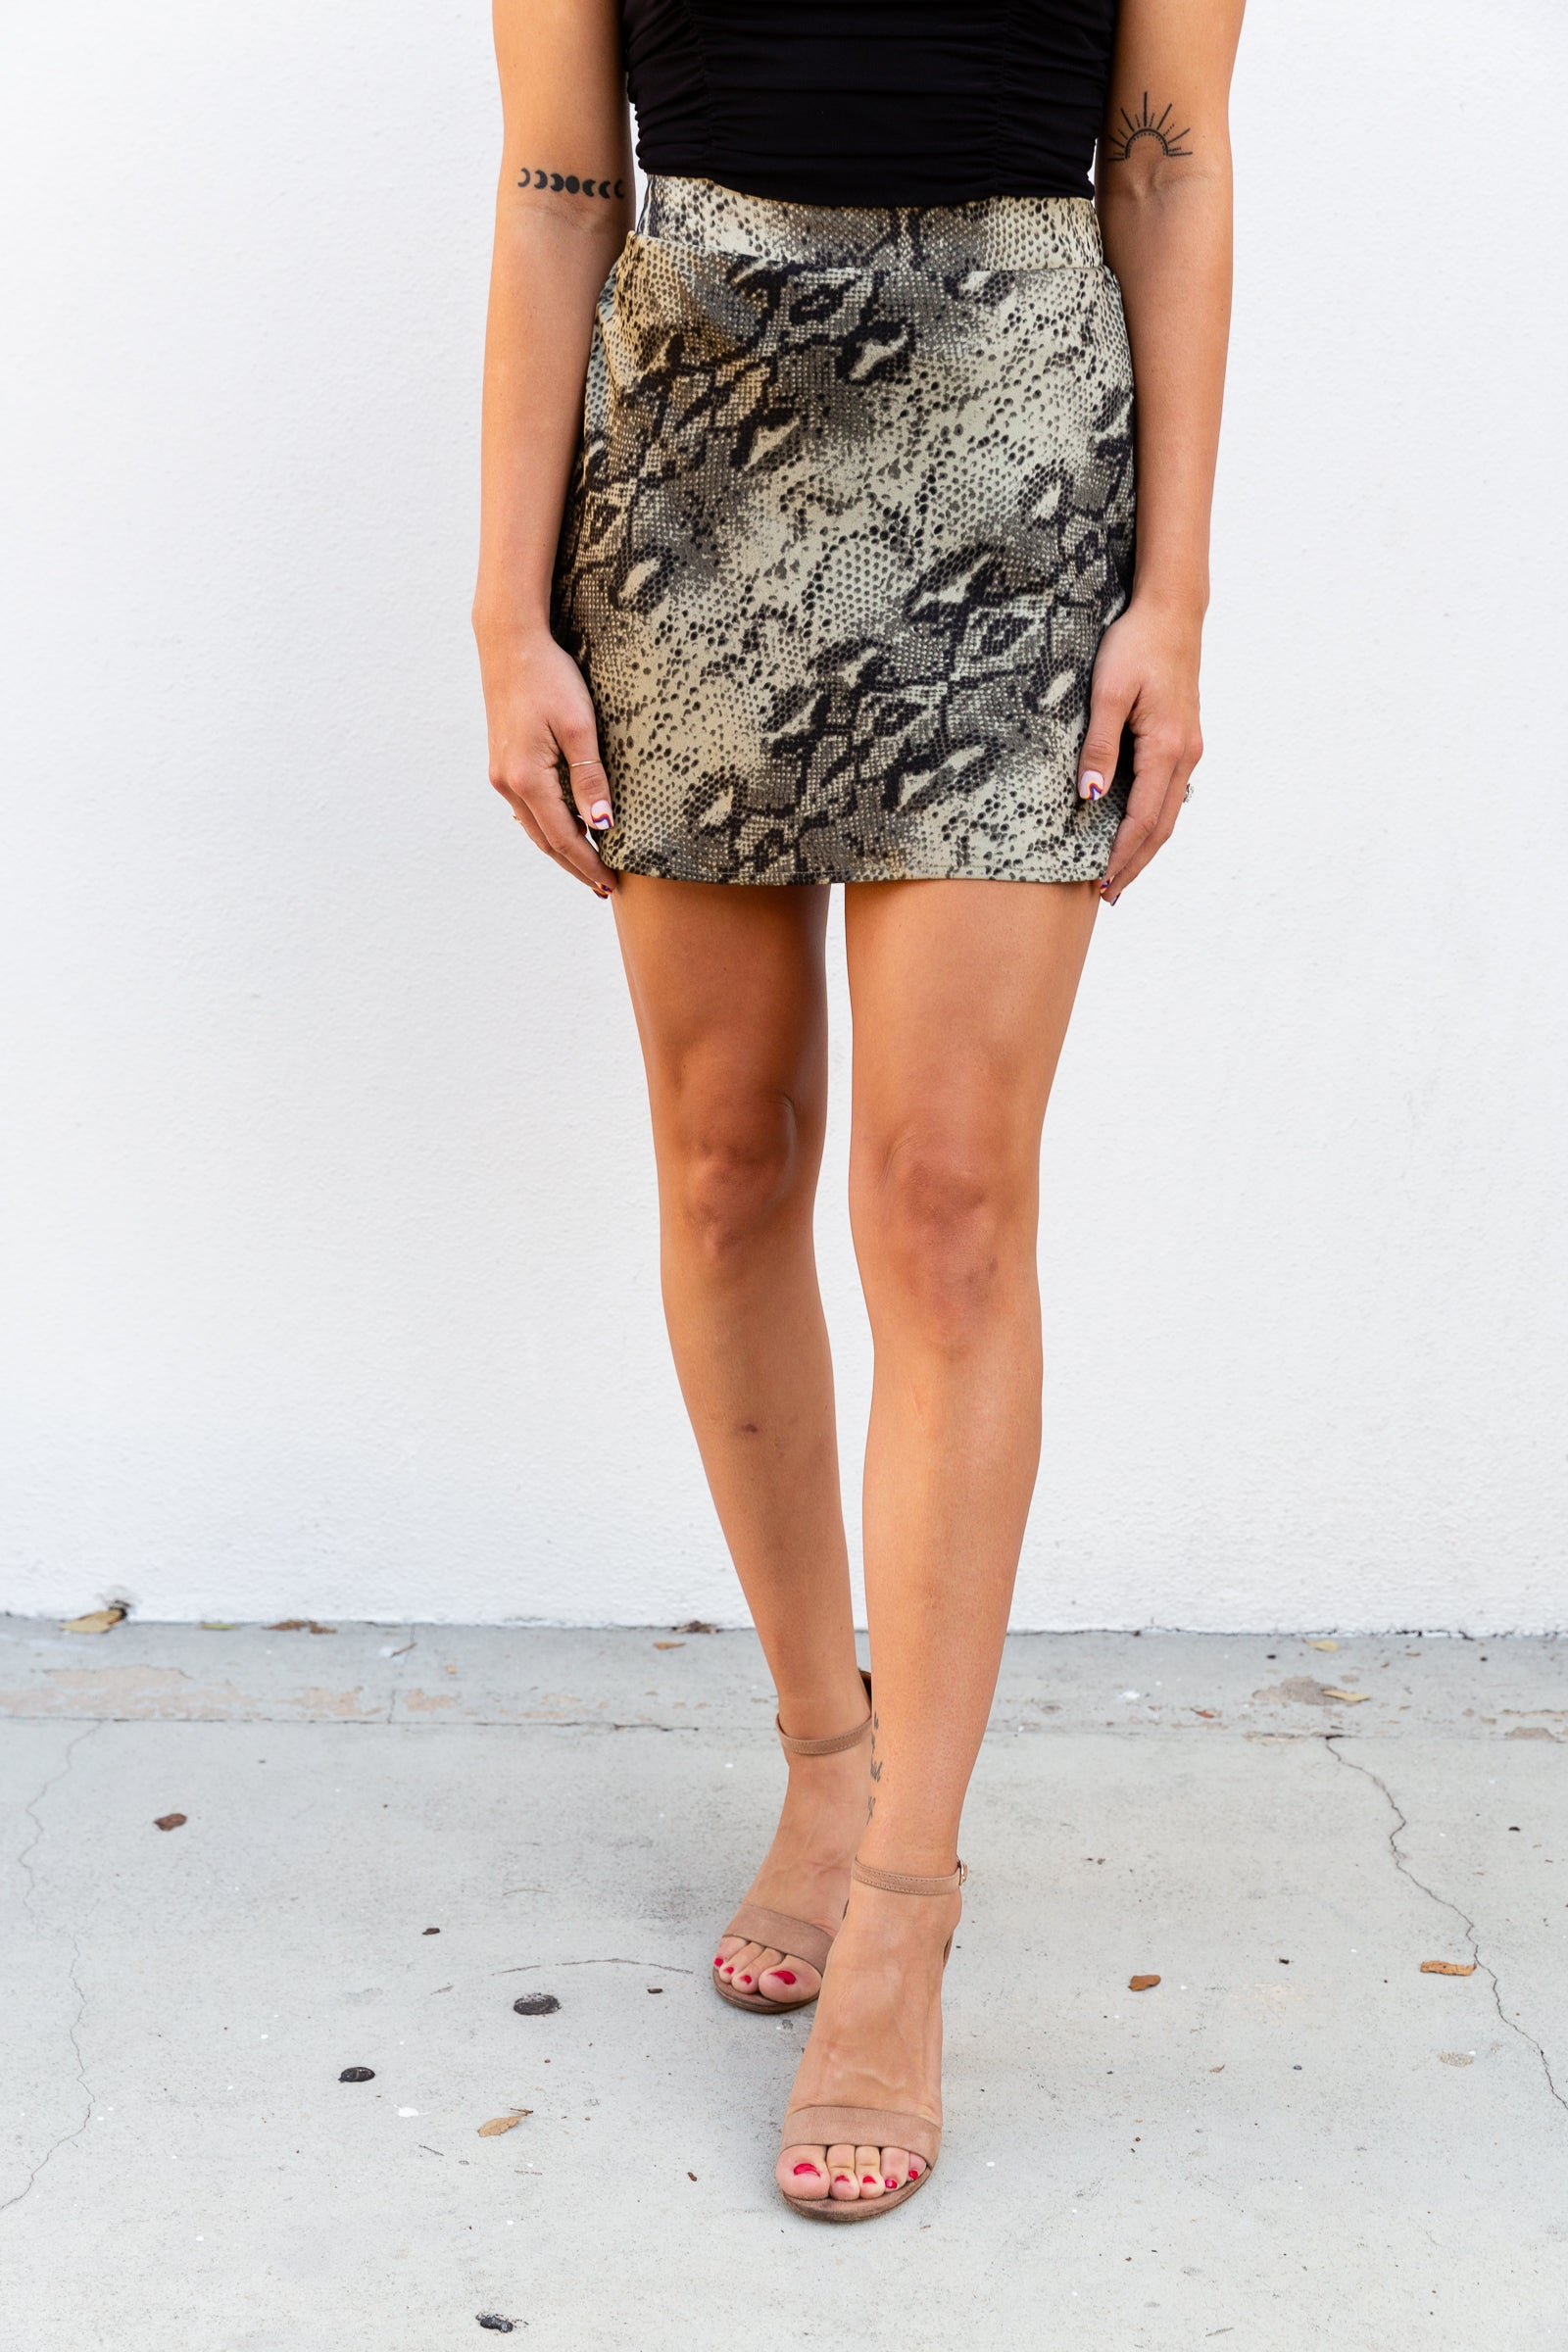 This snake printed skirt is on satiny fabric. It has an elastic waistband that goes down into a flowy bias cut skirt with short bottom hem.